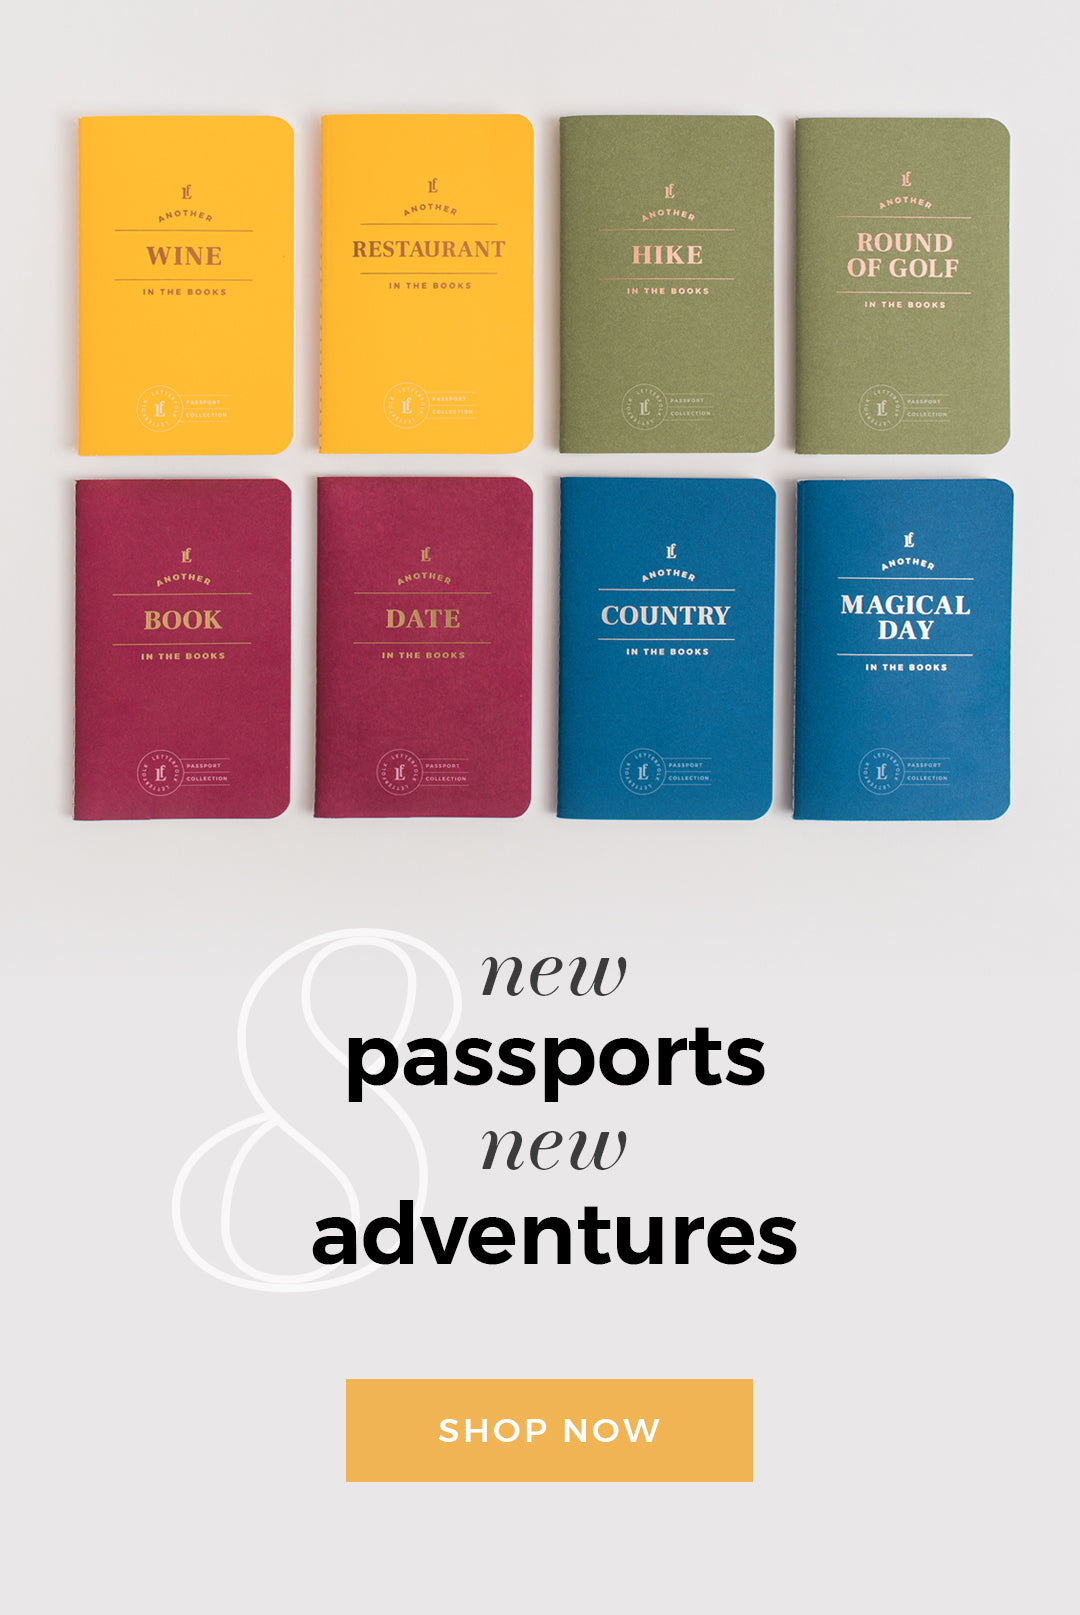 The Newest Additions to the Passport Collection